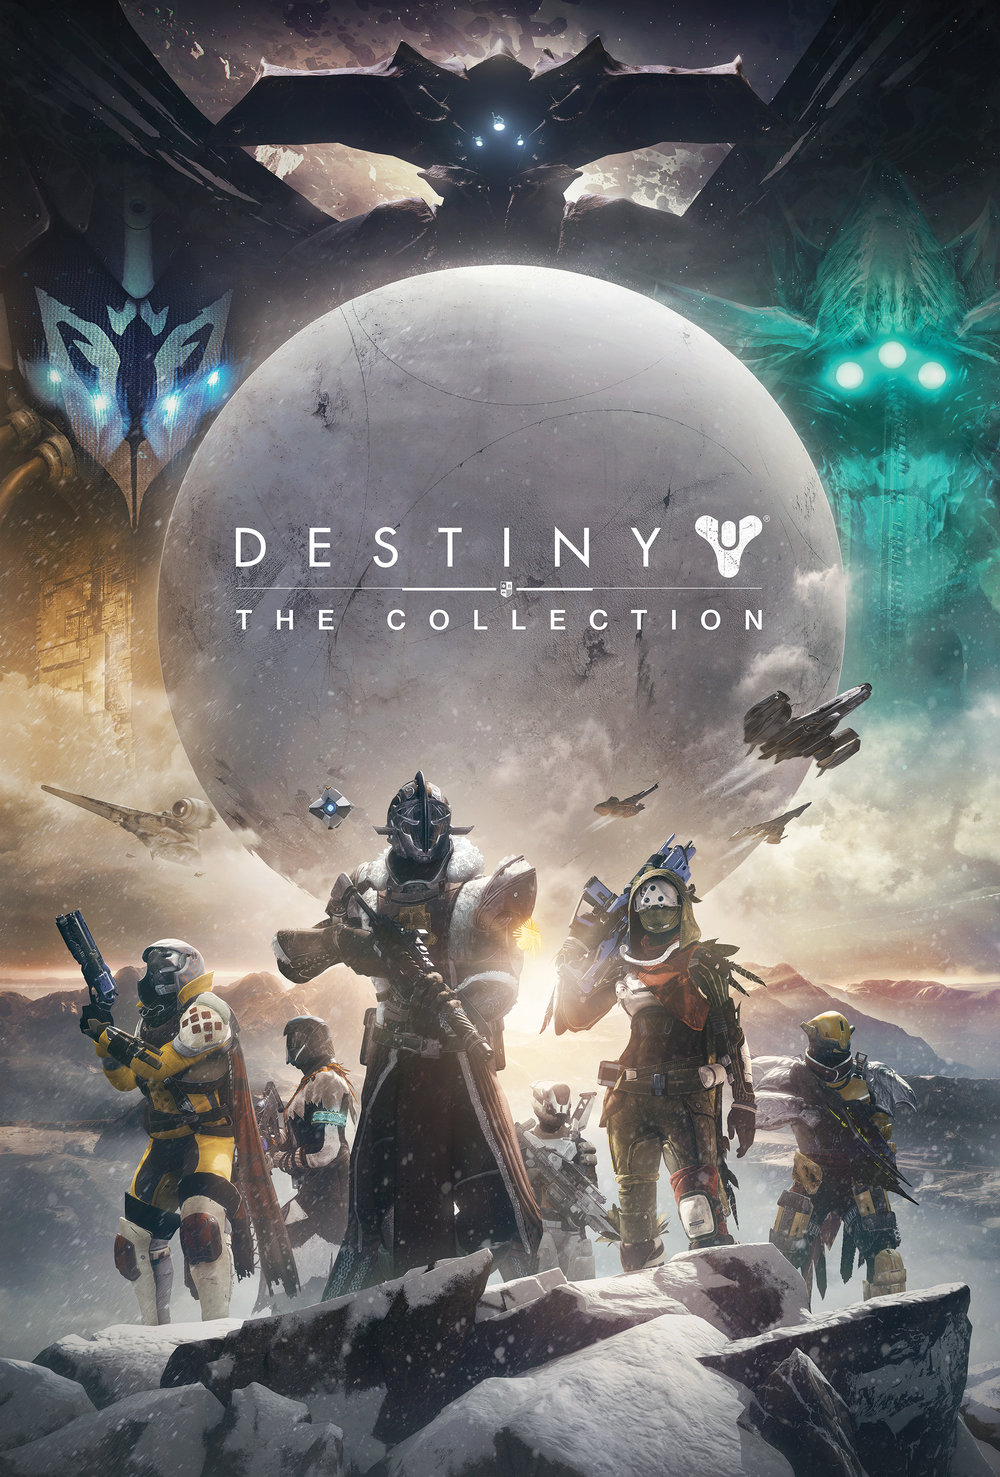 Got the opportunity to create a poster for the Destiny Collection. The poster was created utilizing in-game content and preexisting Destiny Key Art. I had a lot of fun working on this one!